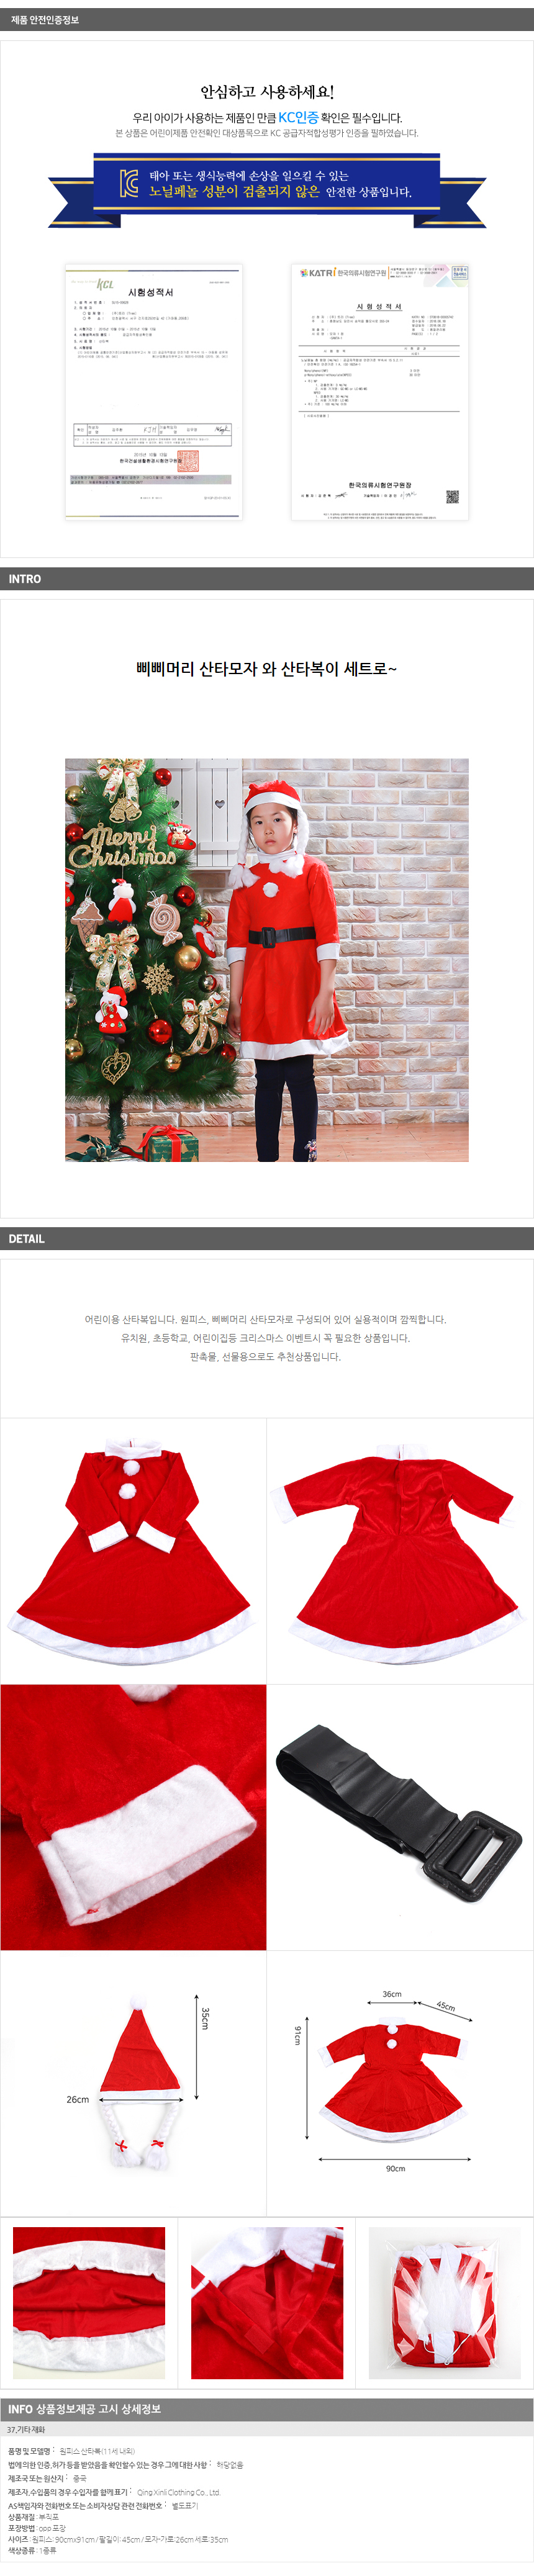 [ WINEQOK ] Christmas Goods / One piece Santa suit set inside and outside